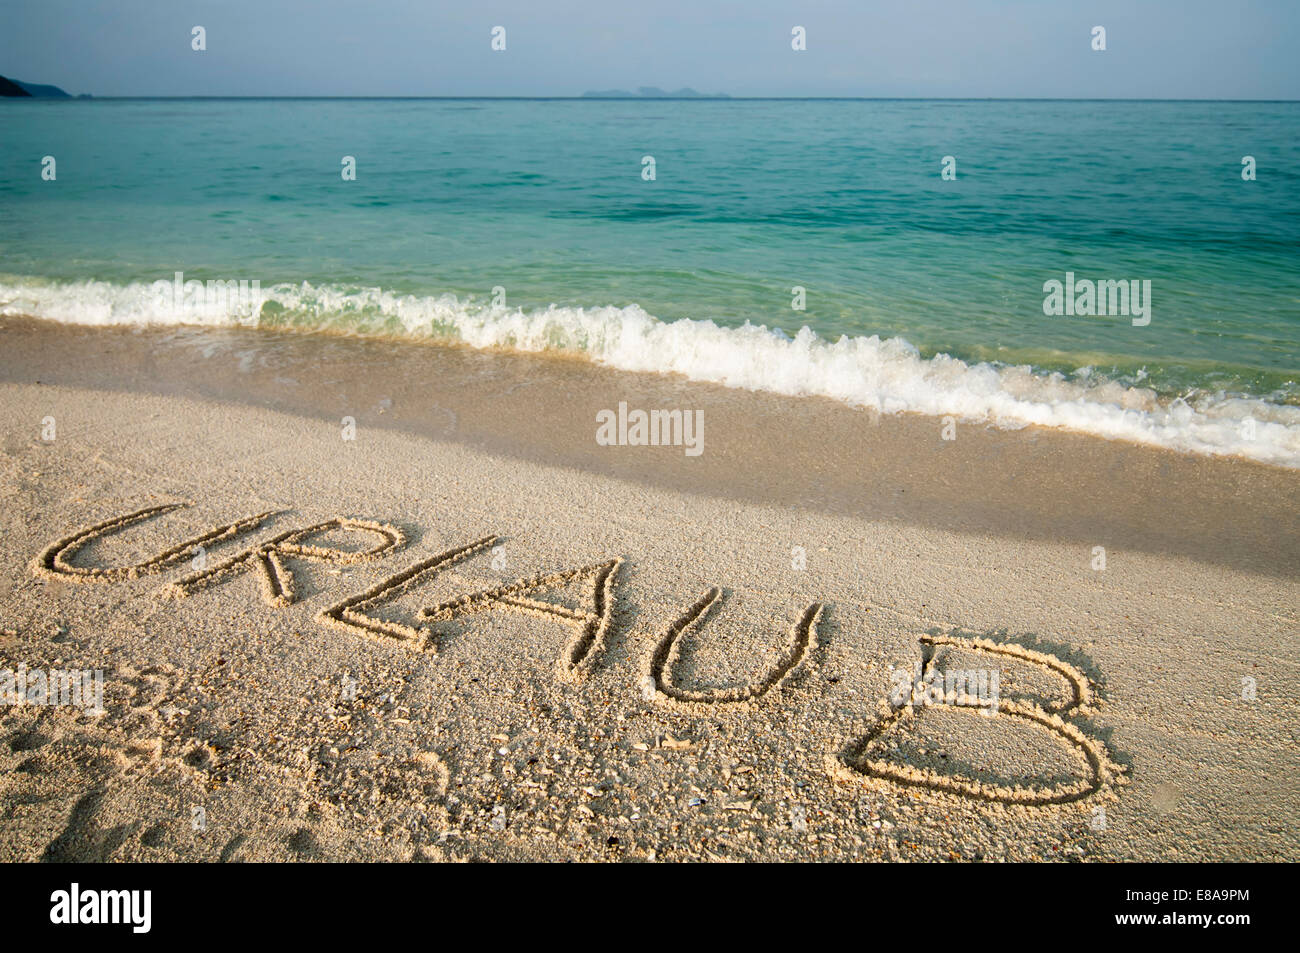 the word 'Urlaub' scratched into sand at beach, Koh Lipe, Thailand - Stock Image